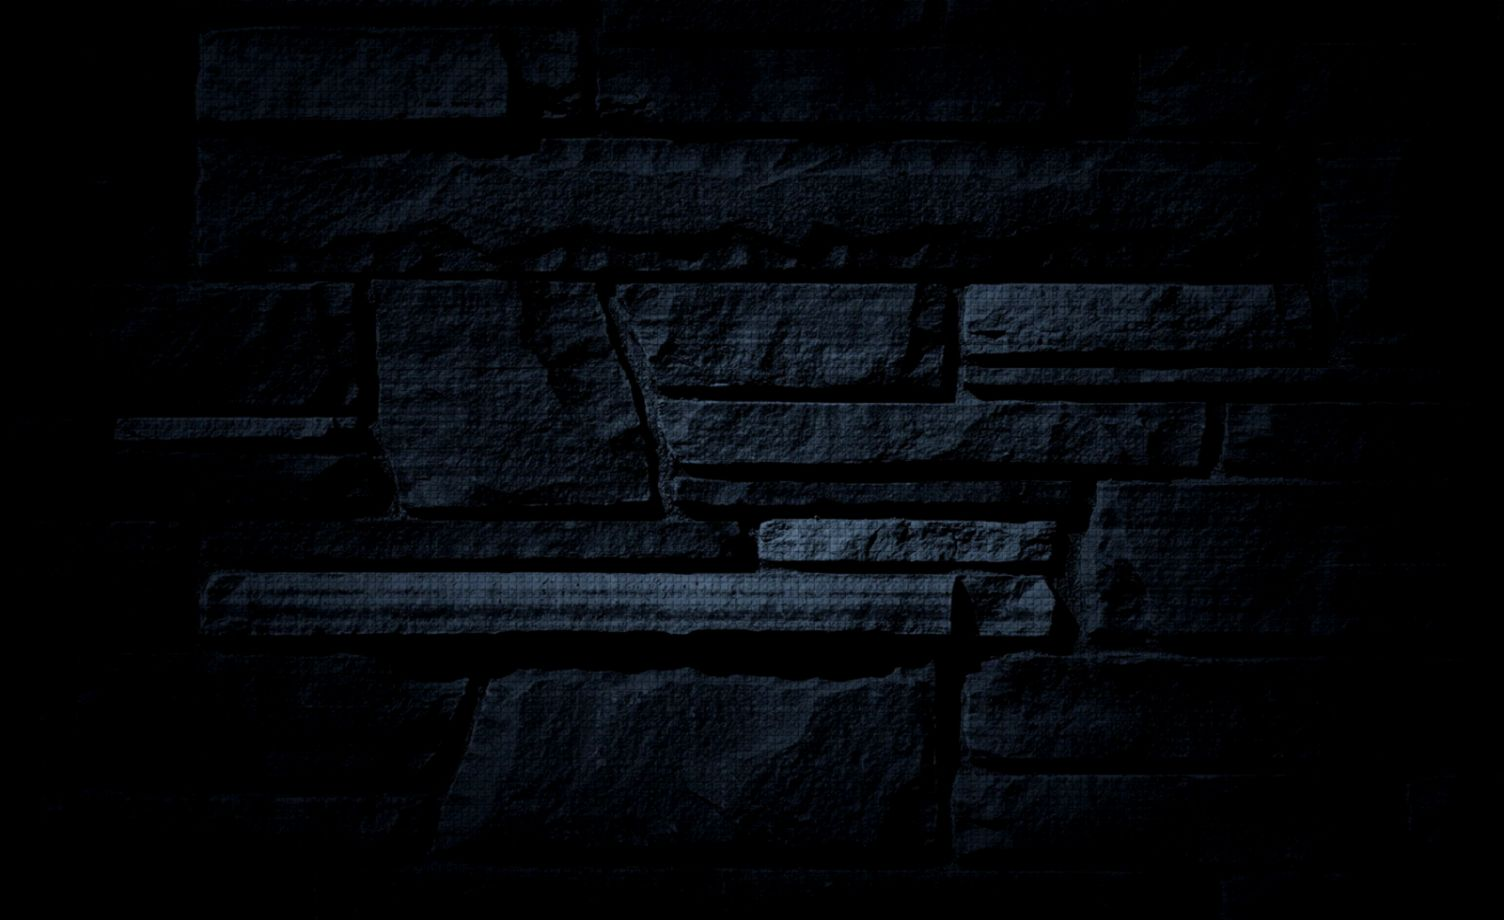 Rock Wall Brick Texture Iphone 5 Wallpaper Love Wallpapers